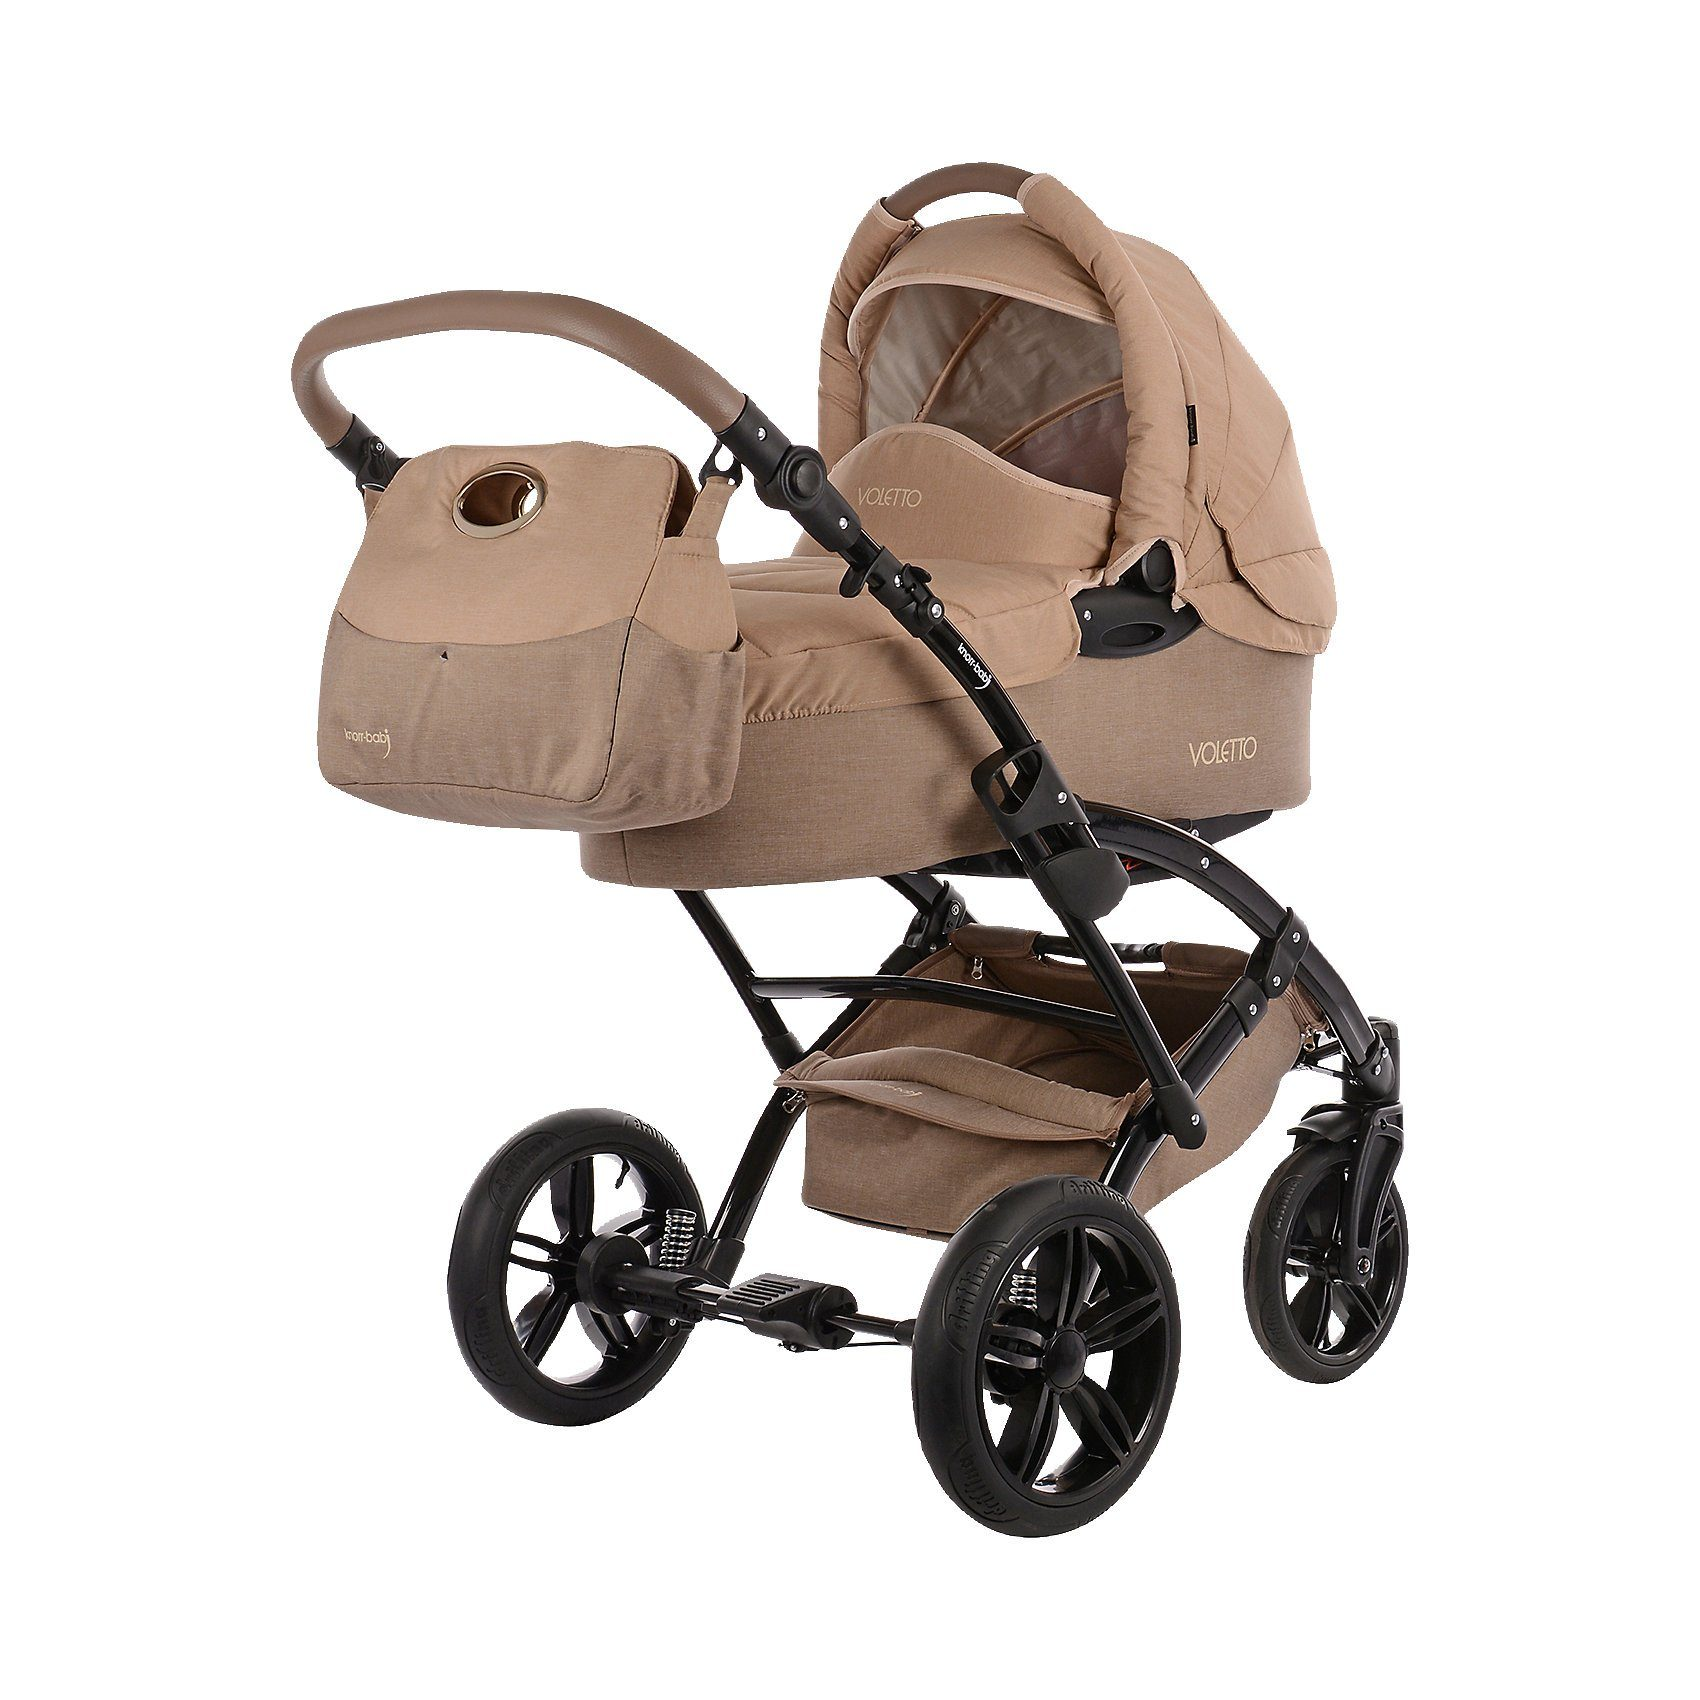 knorr-baby Kombi Kinderwagen Voletto Happy Colour mit Wickeltasche, san